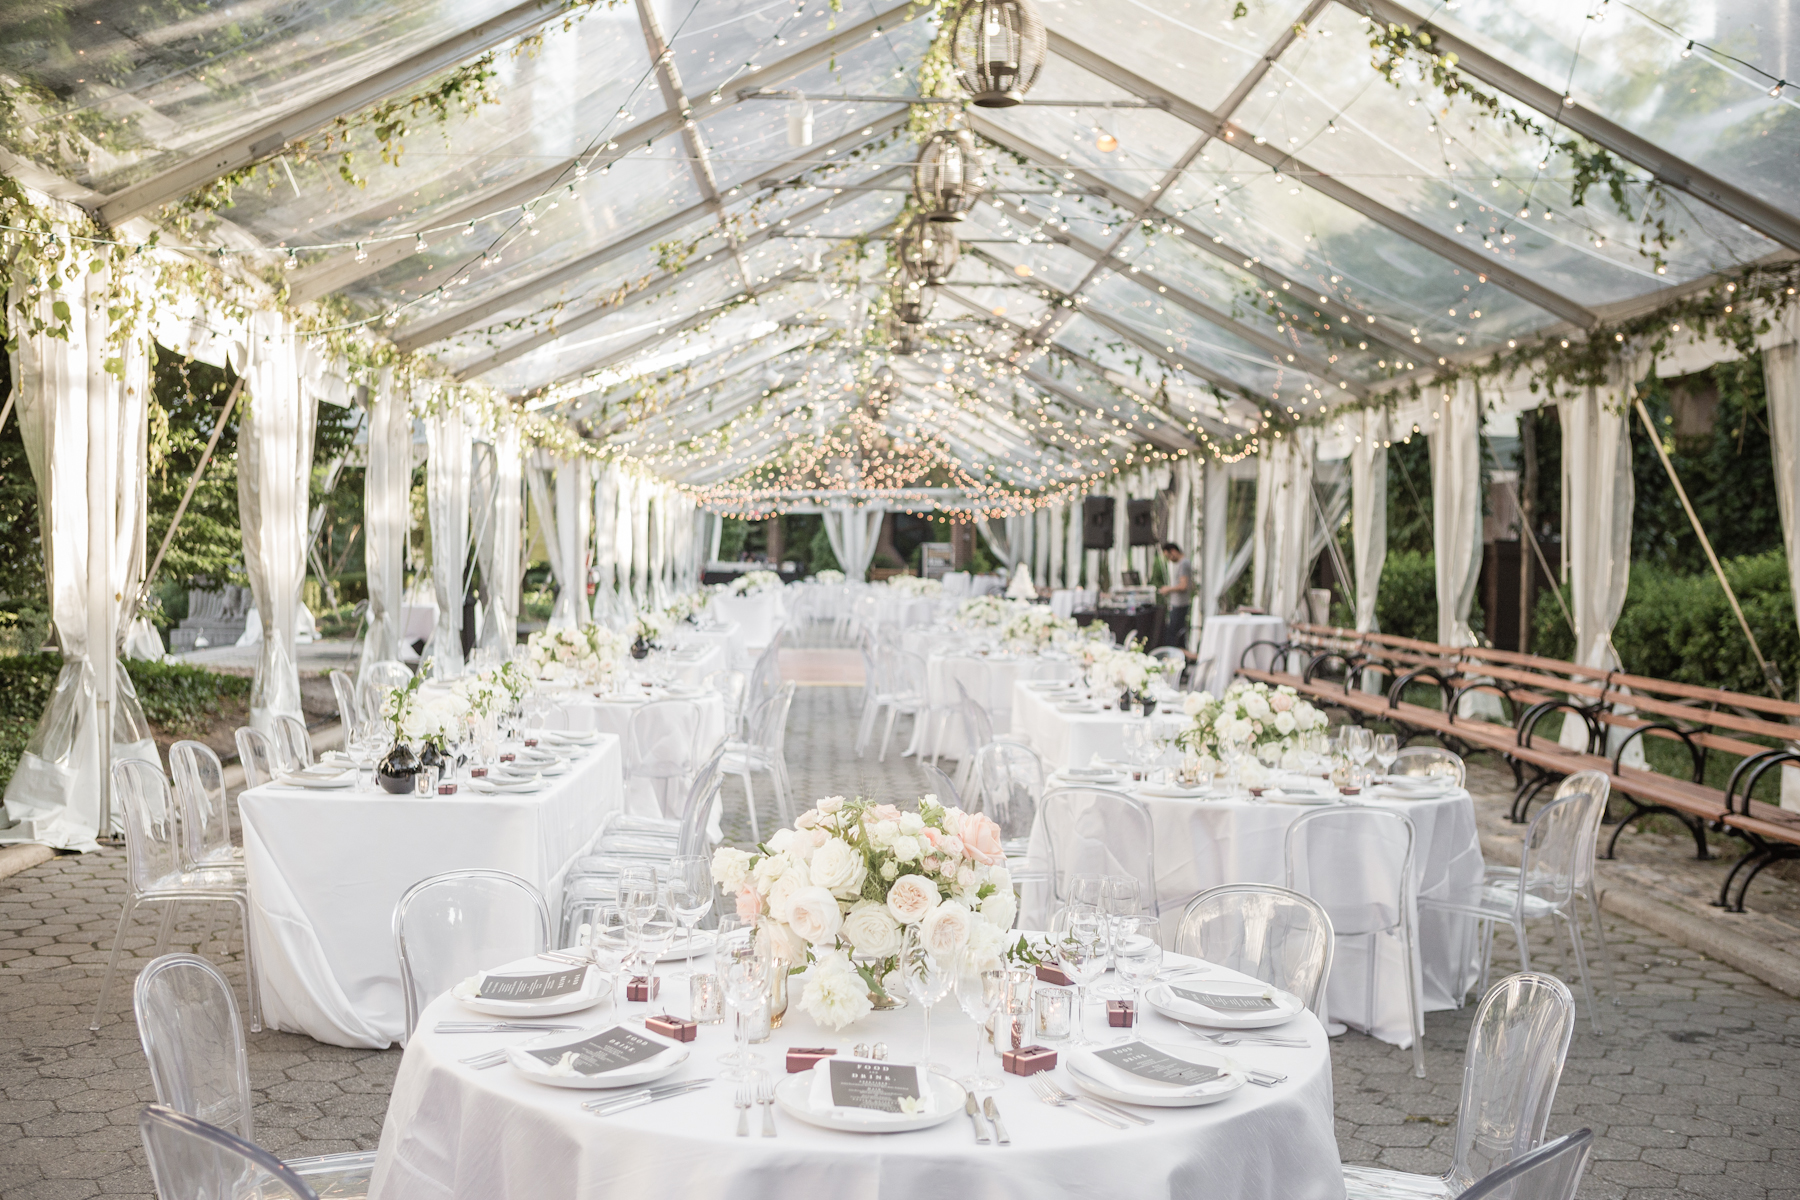 Central Park Zoo wedding by Ang Weddings and Events